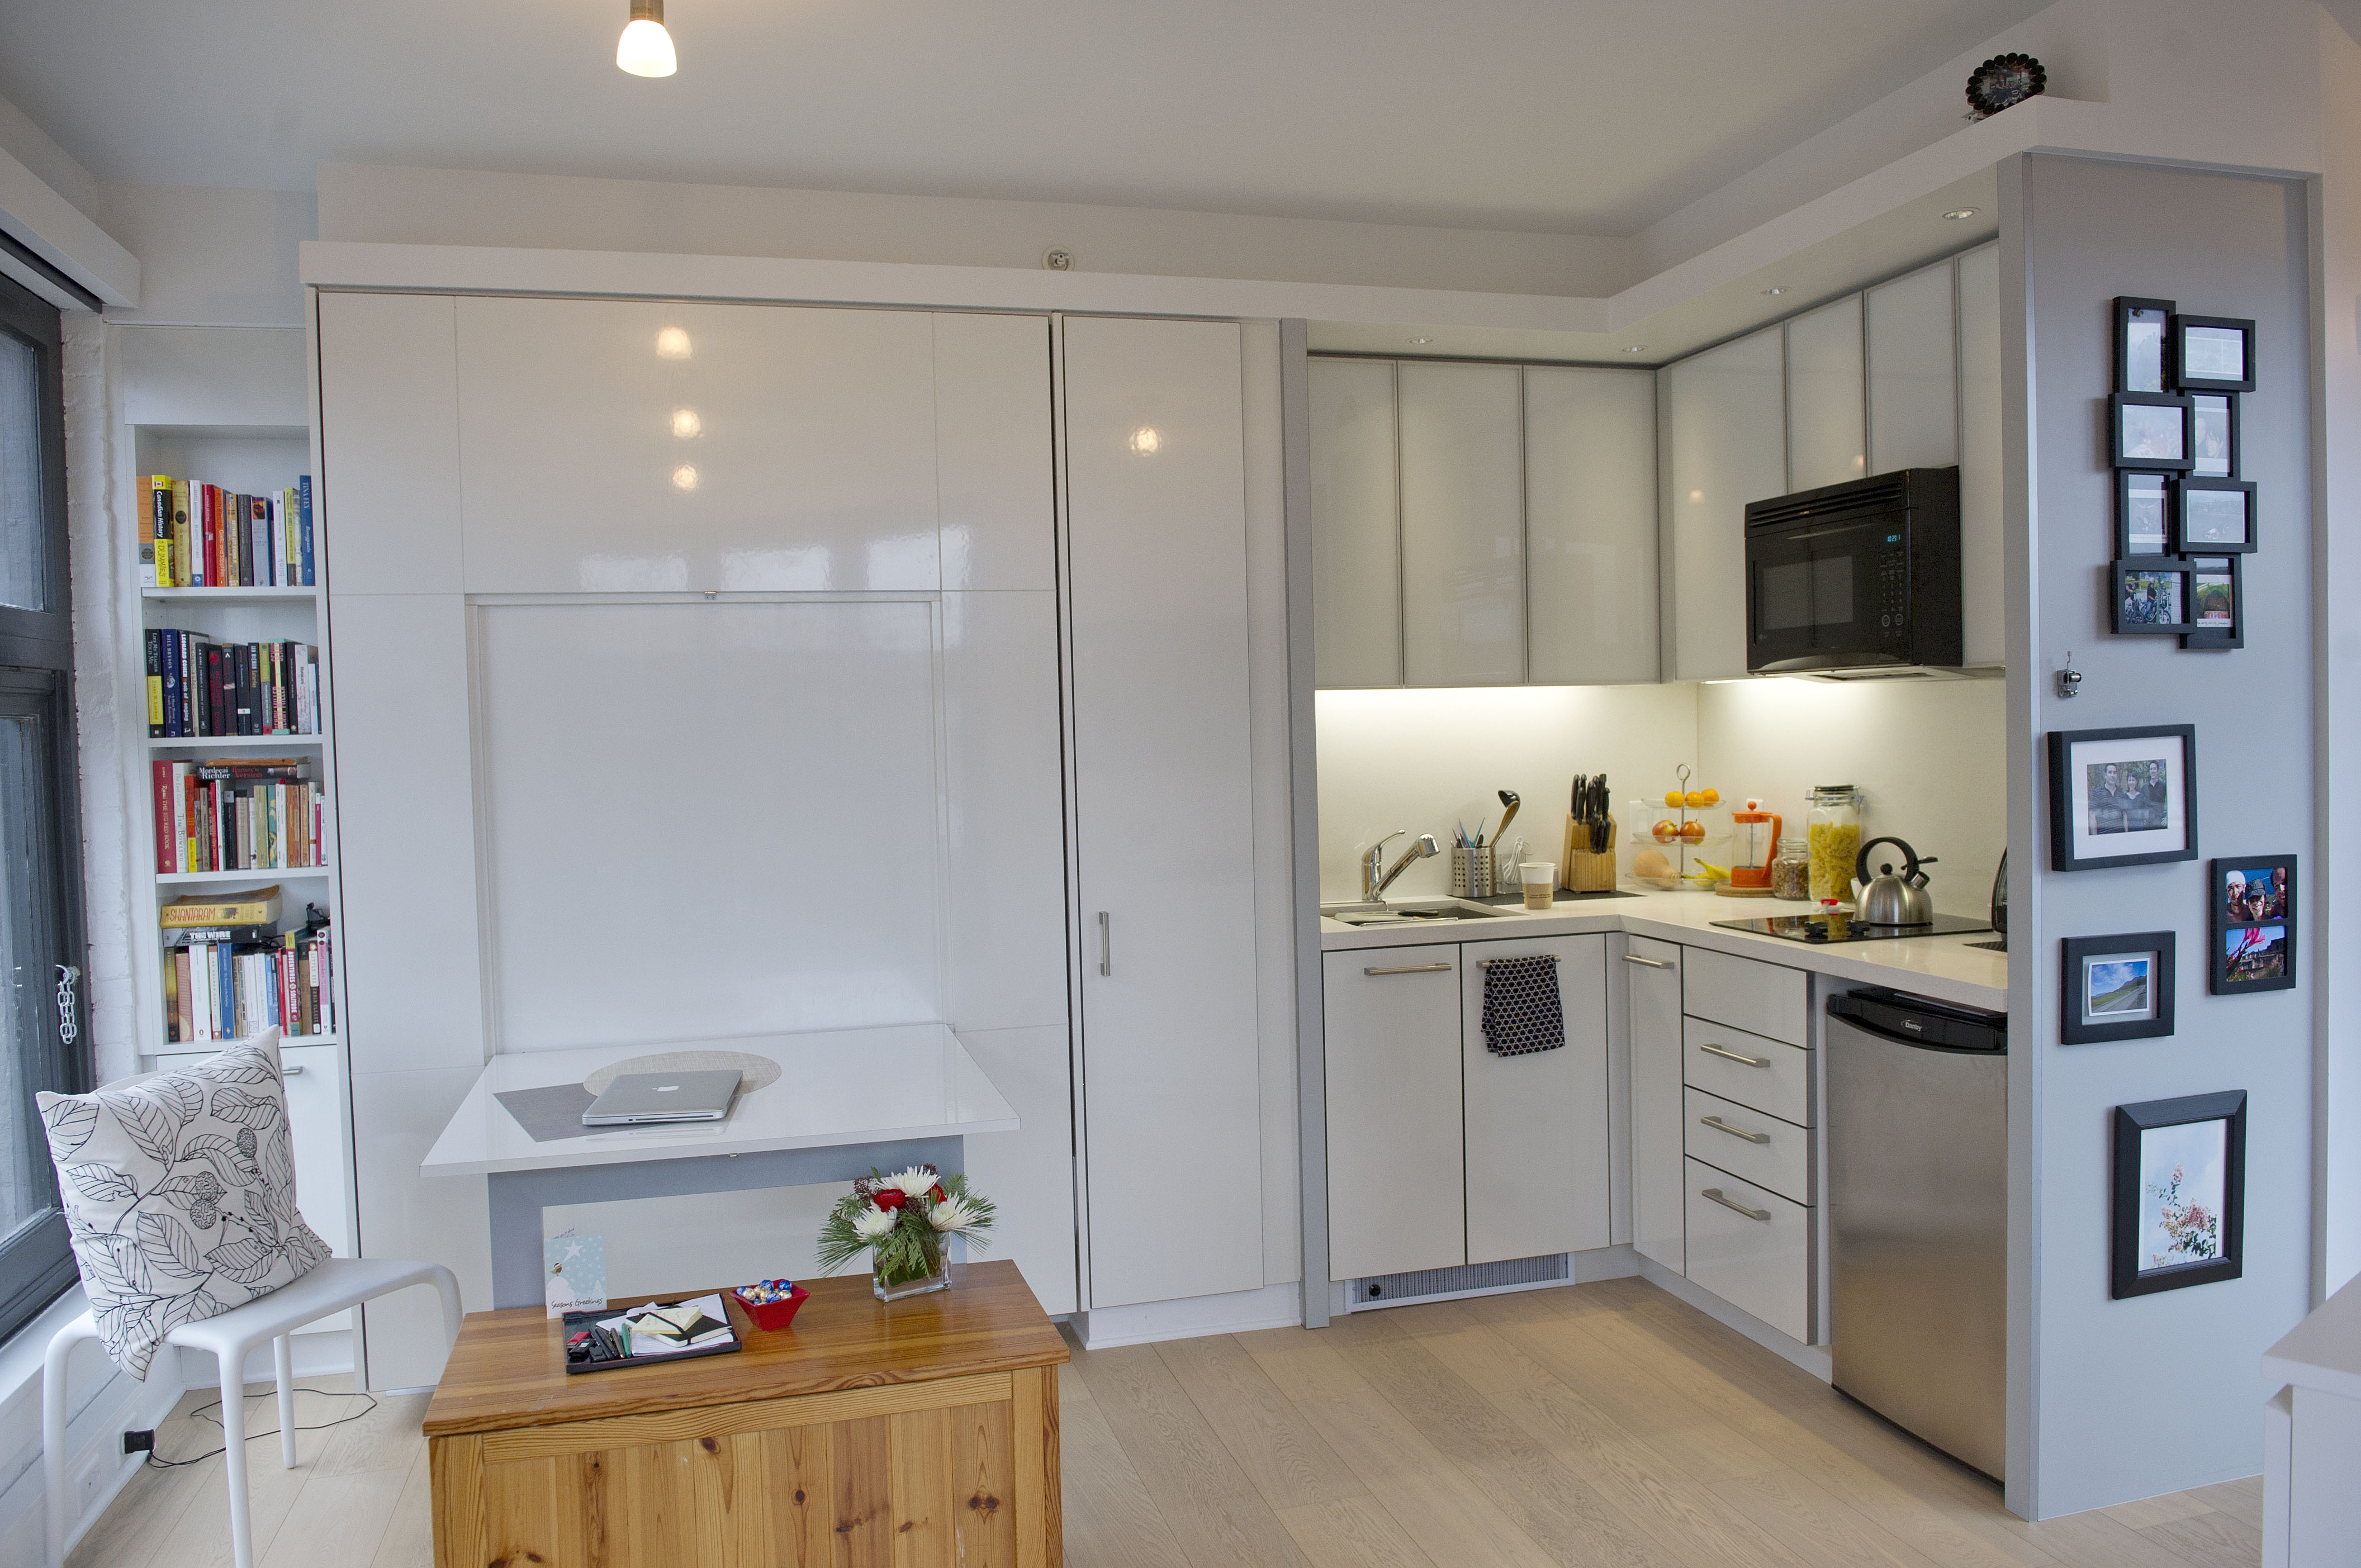 Vancouver micro lofts canada 39 s tiniest rental suites for Micro living apartment